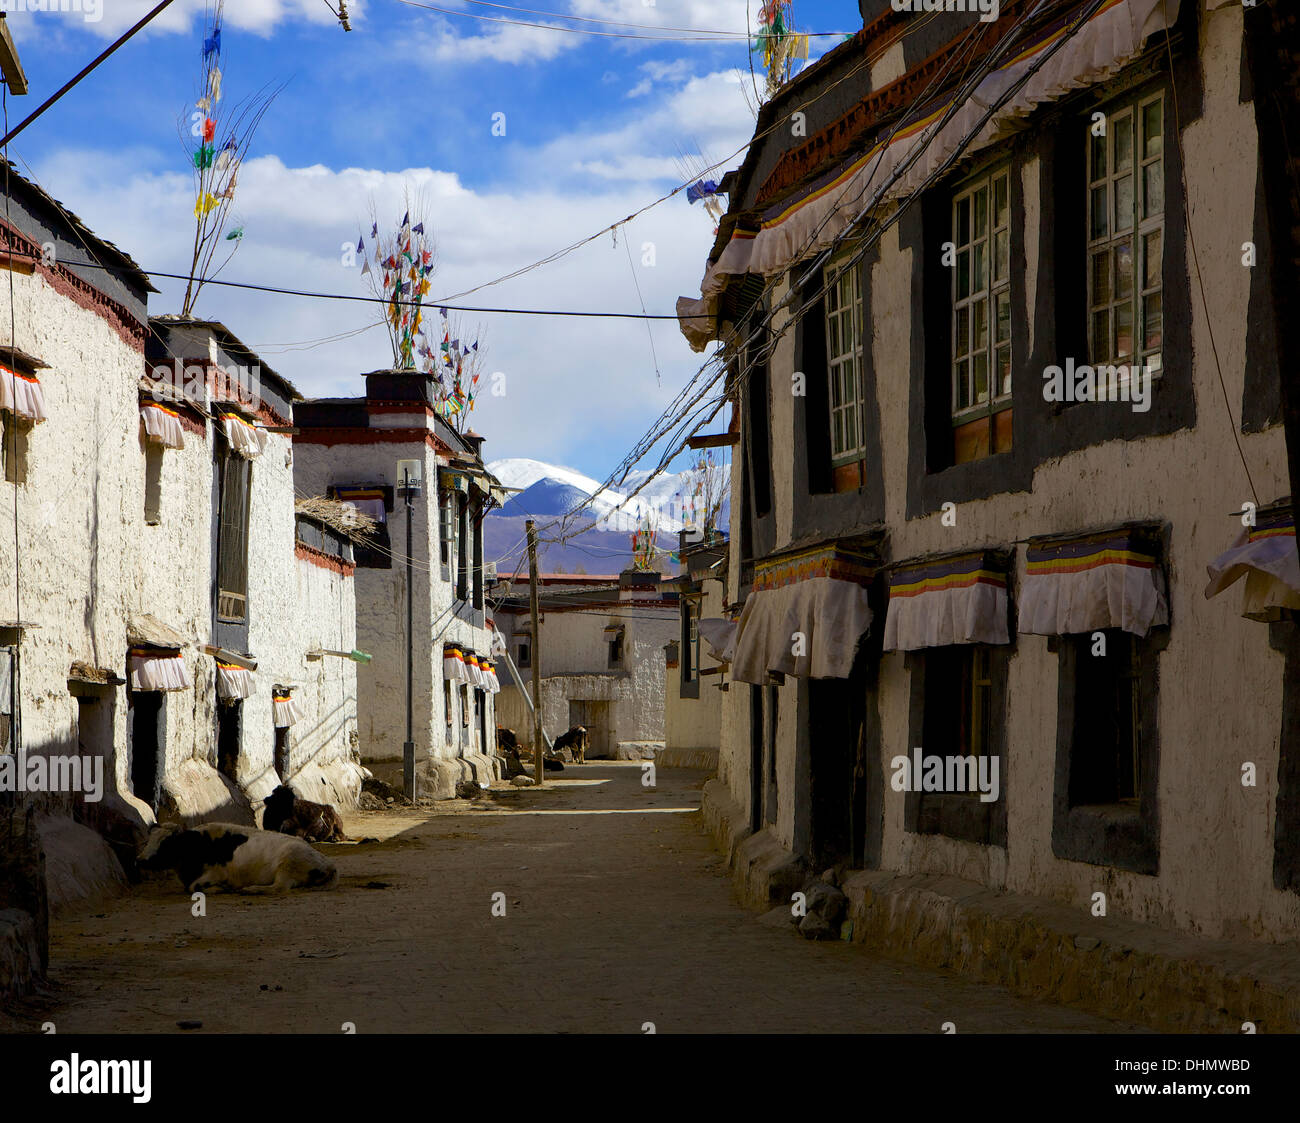 The Tibetan city of Gyantse (Gyangtse) with mountain range in background, Tibet, China, Asia - Stock Image